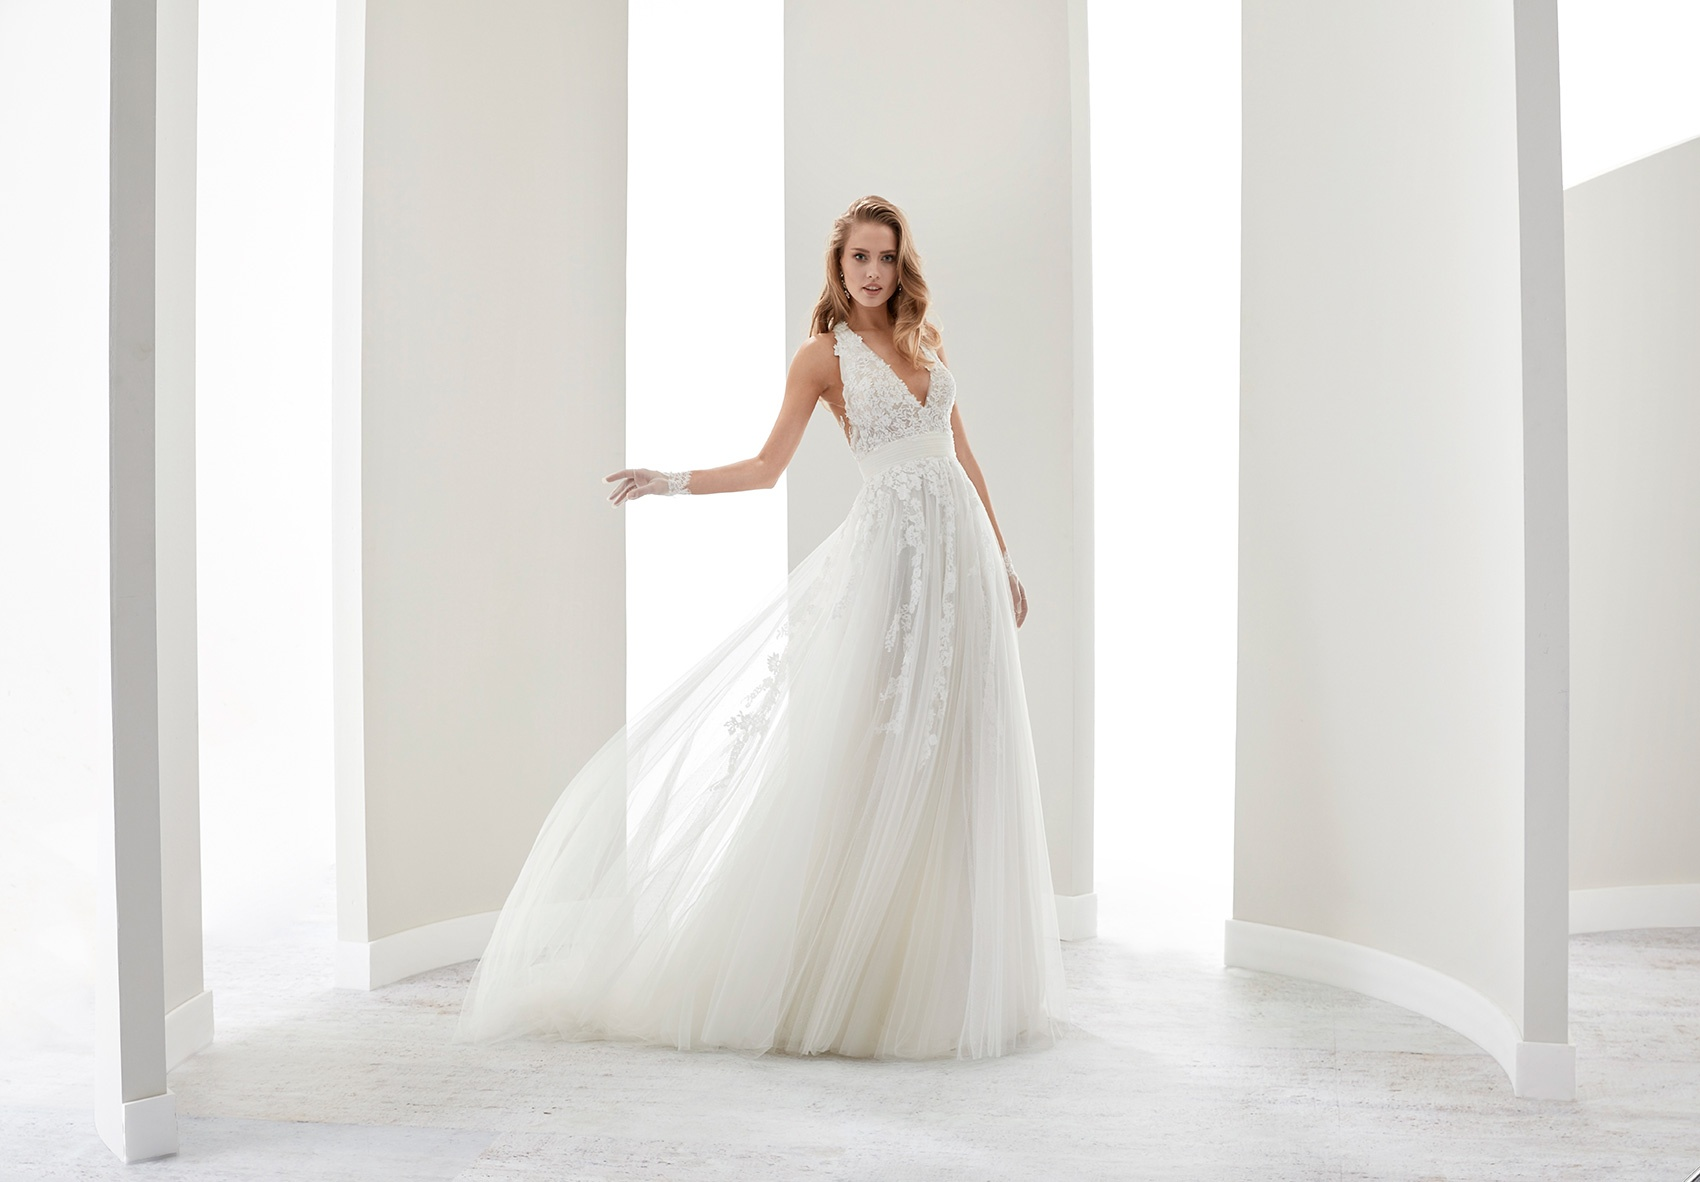 Abeille Bridal | Designer Wedding Gowns at Affordable Prices